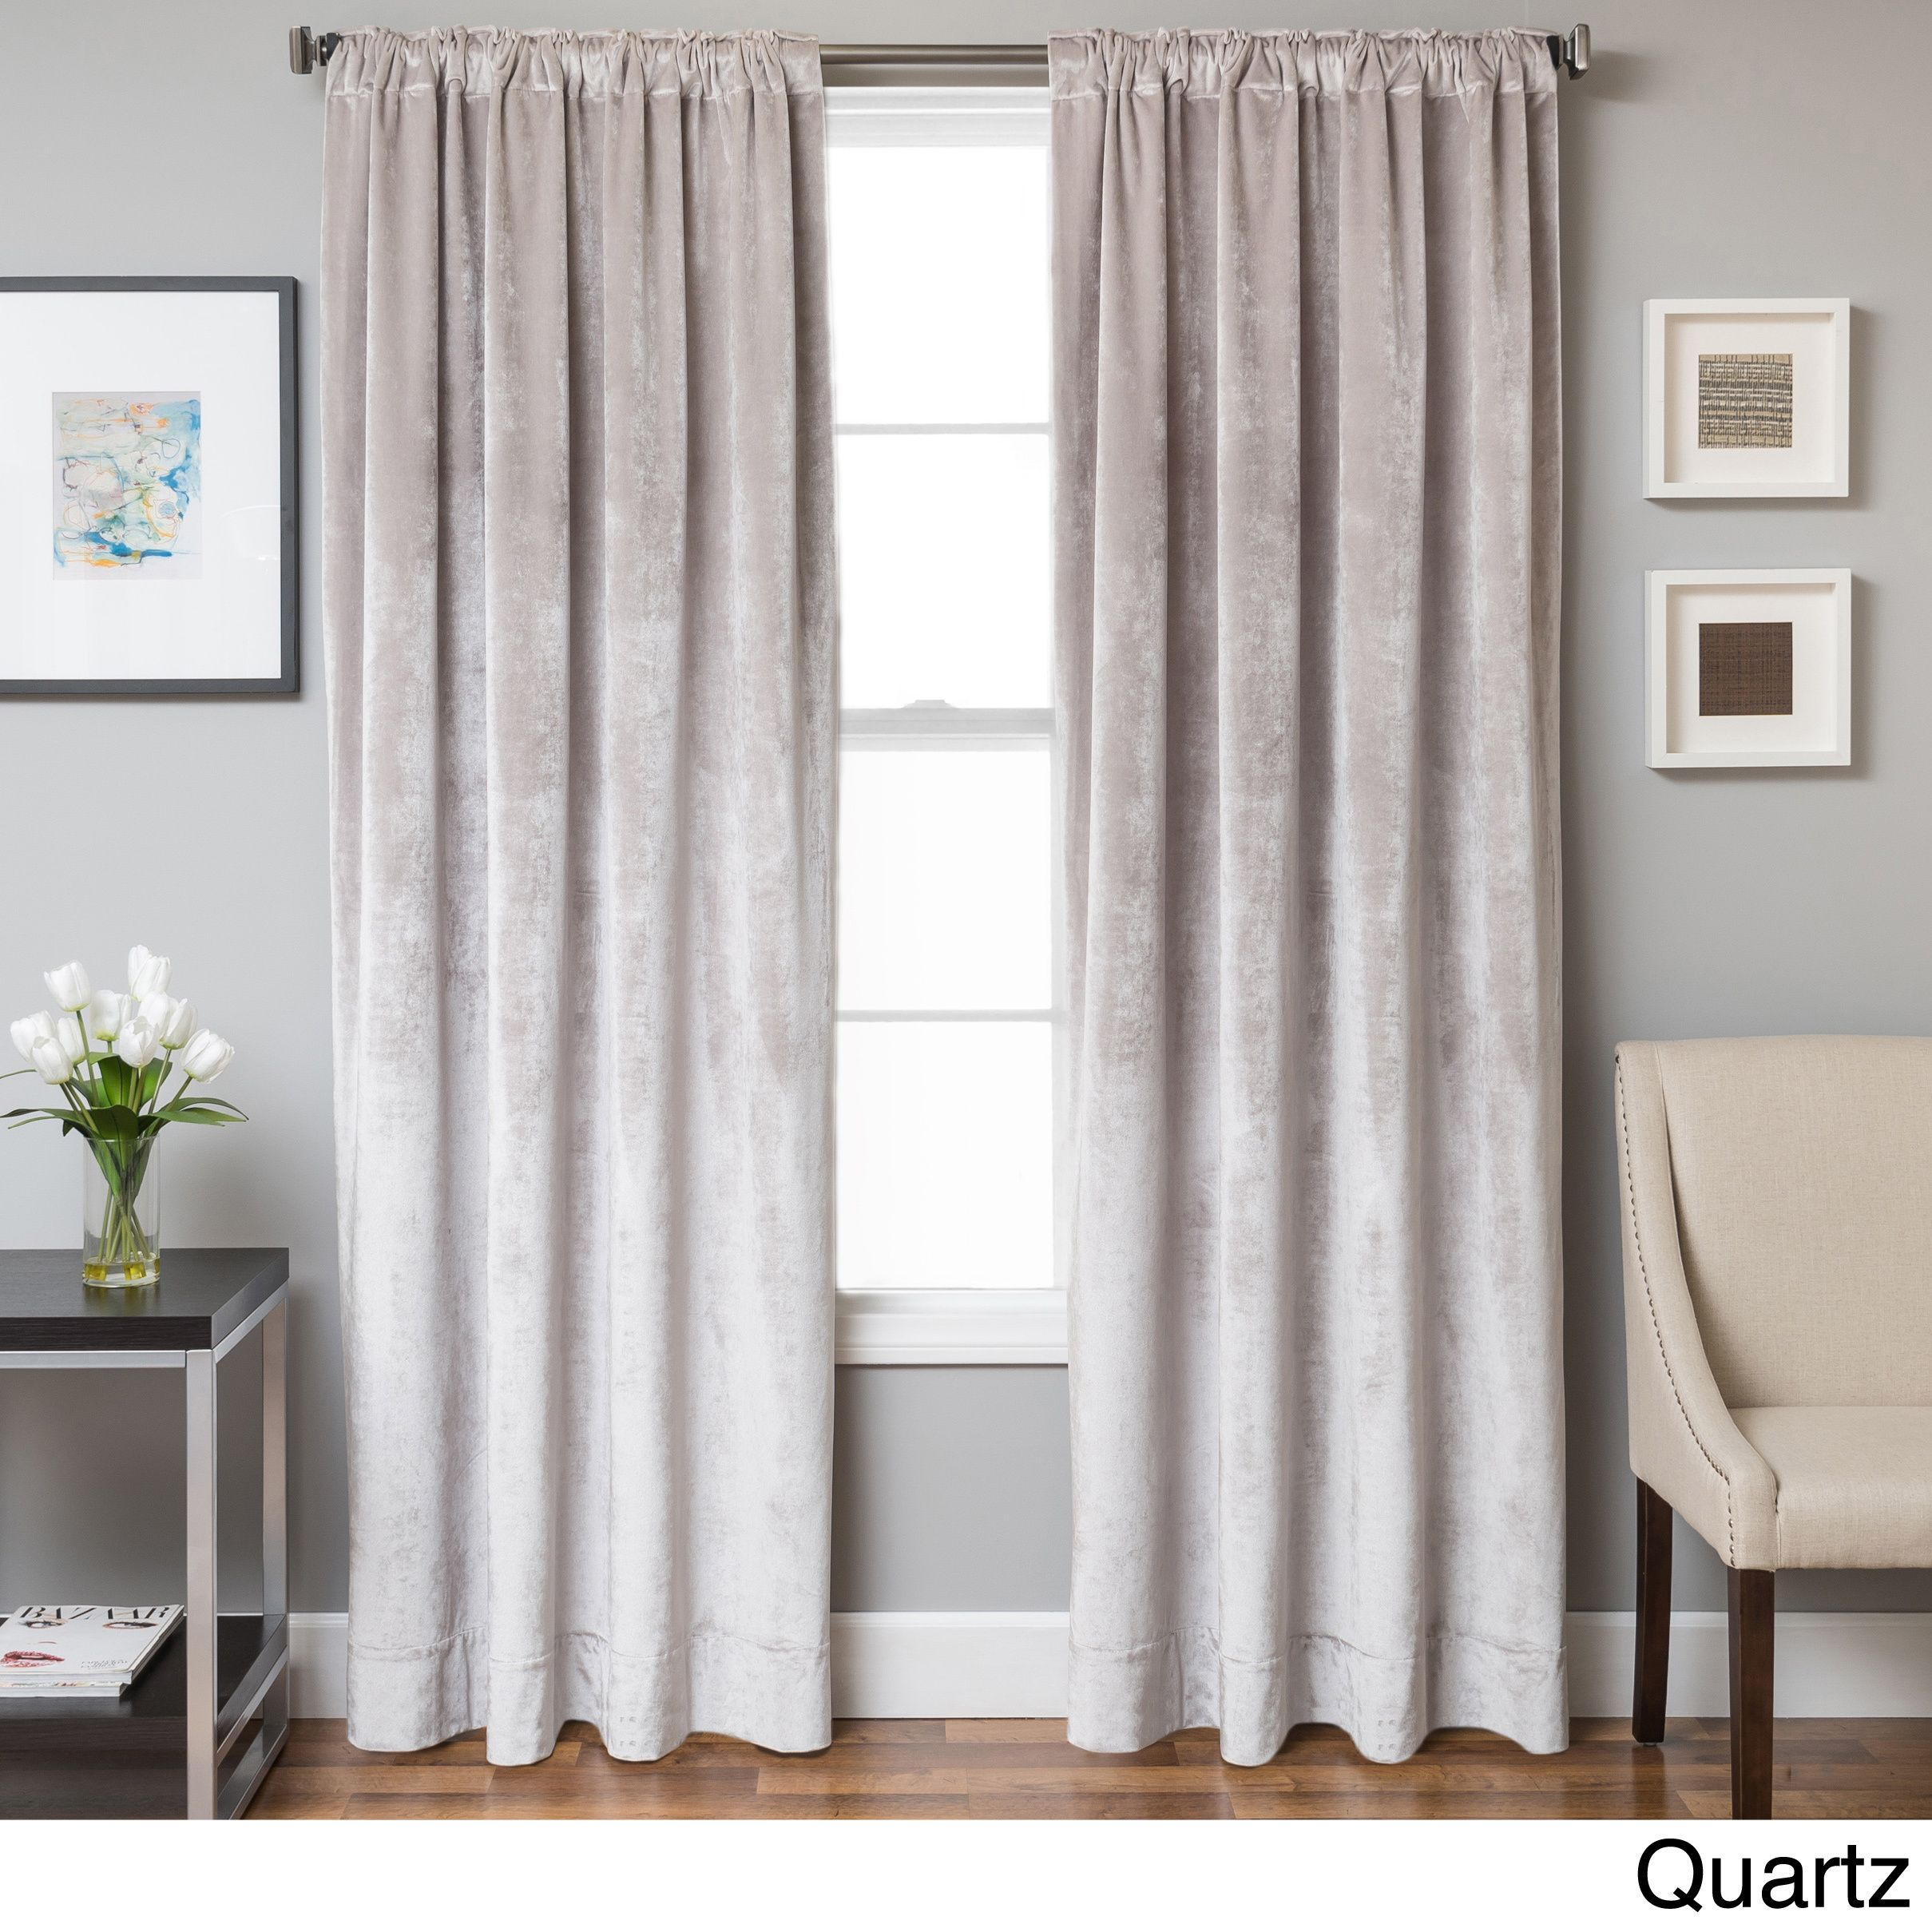 for curtains panel natural velvet curtain exclusive drapes panels fabrics grey blackout pin less